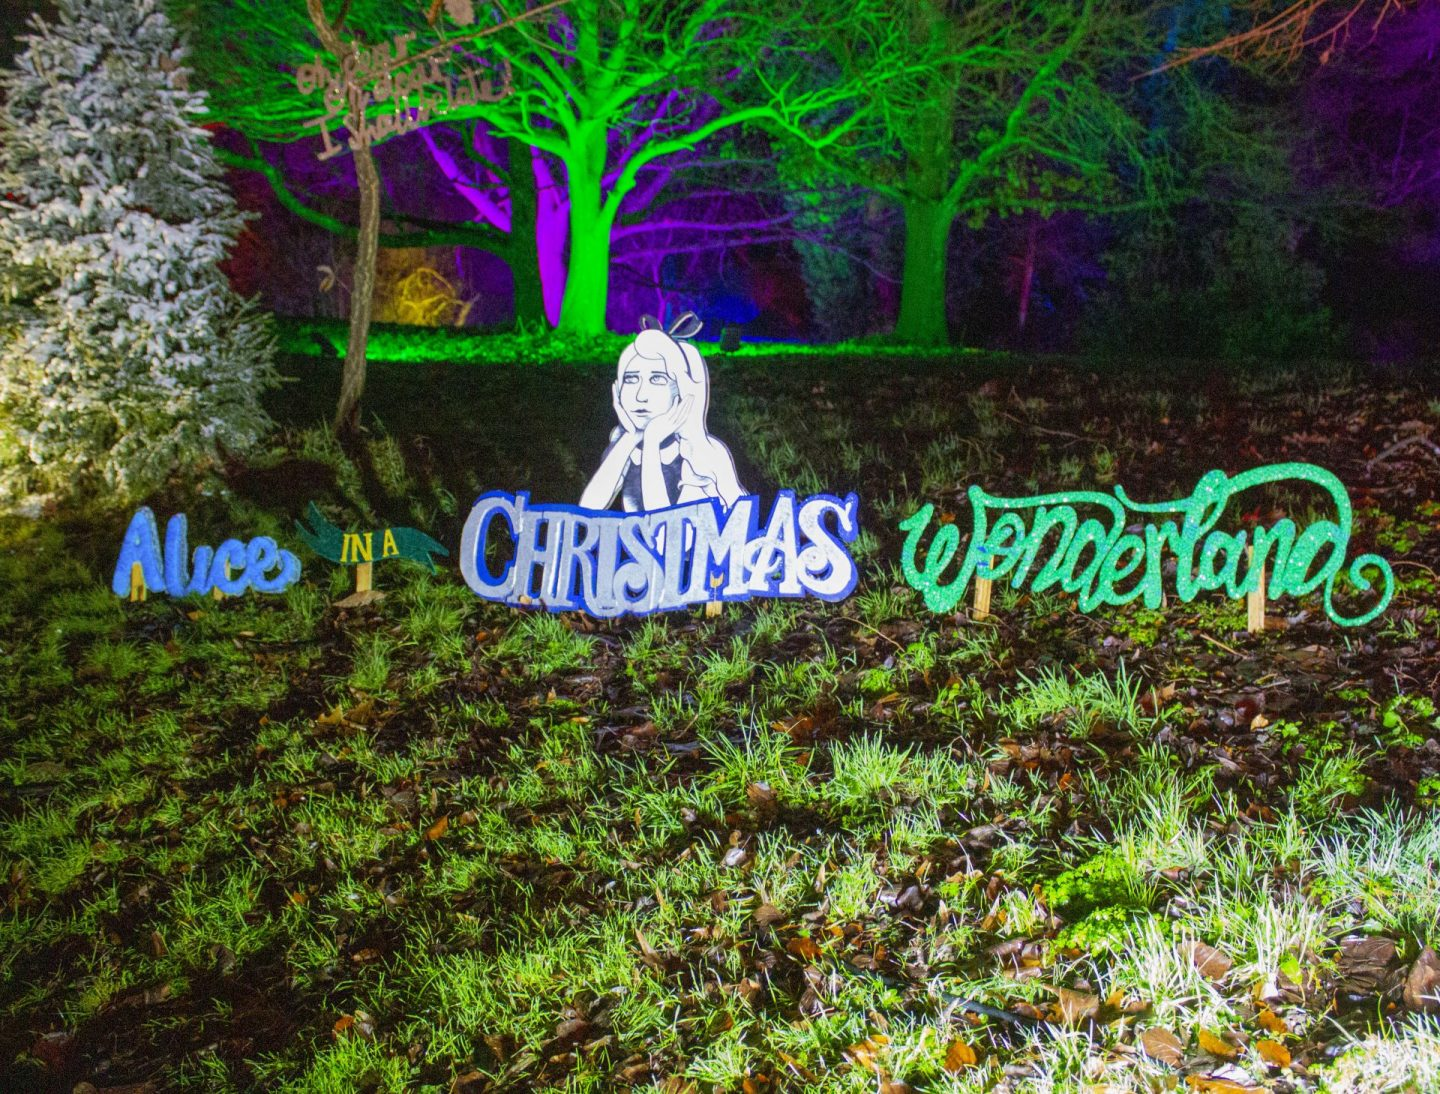 Alice in a Christmas wonderland, Christmas trail, Kent, England, Visit England